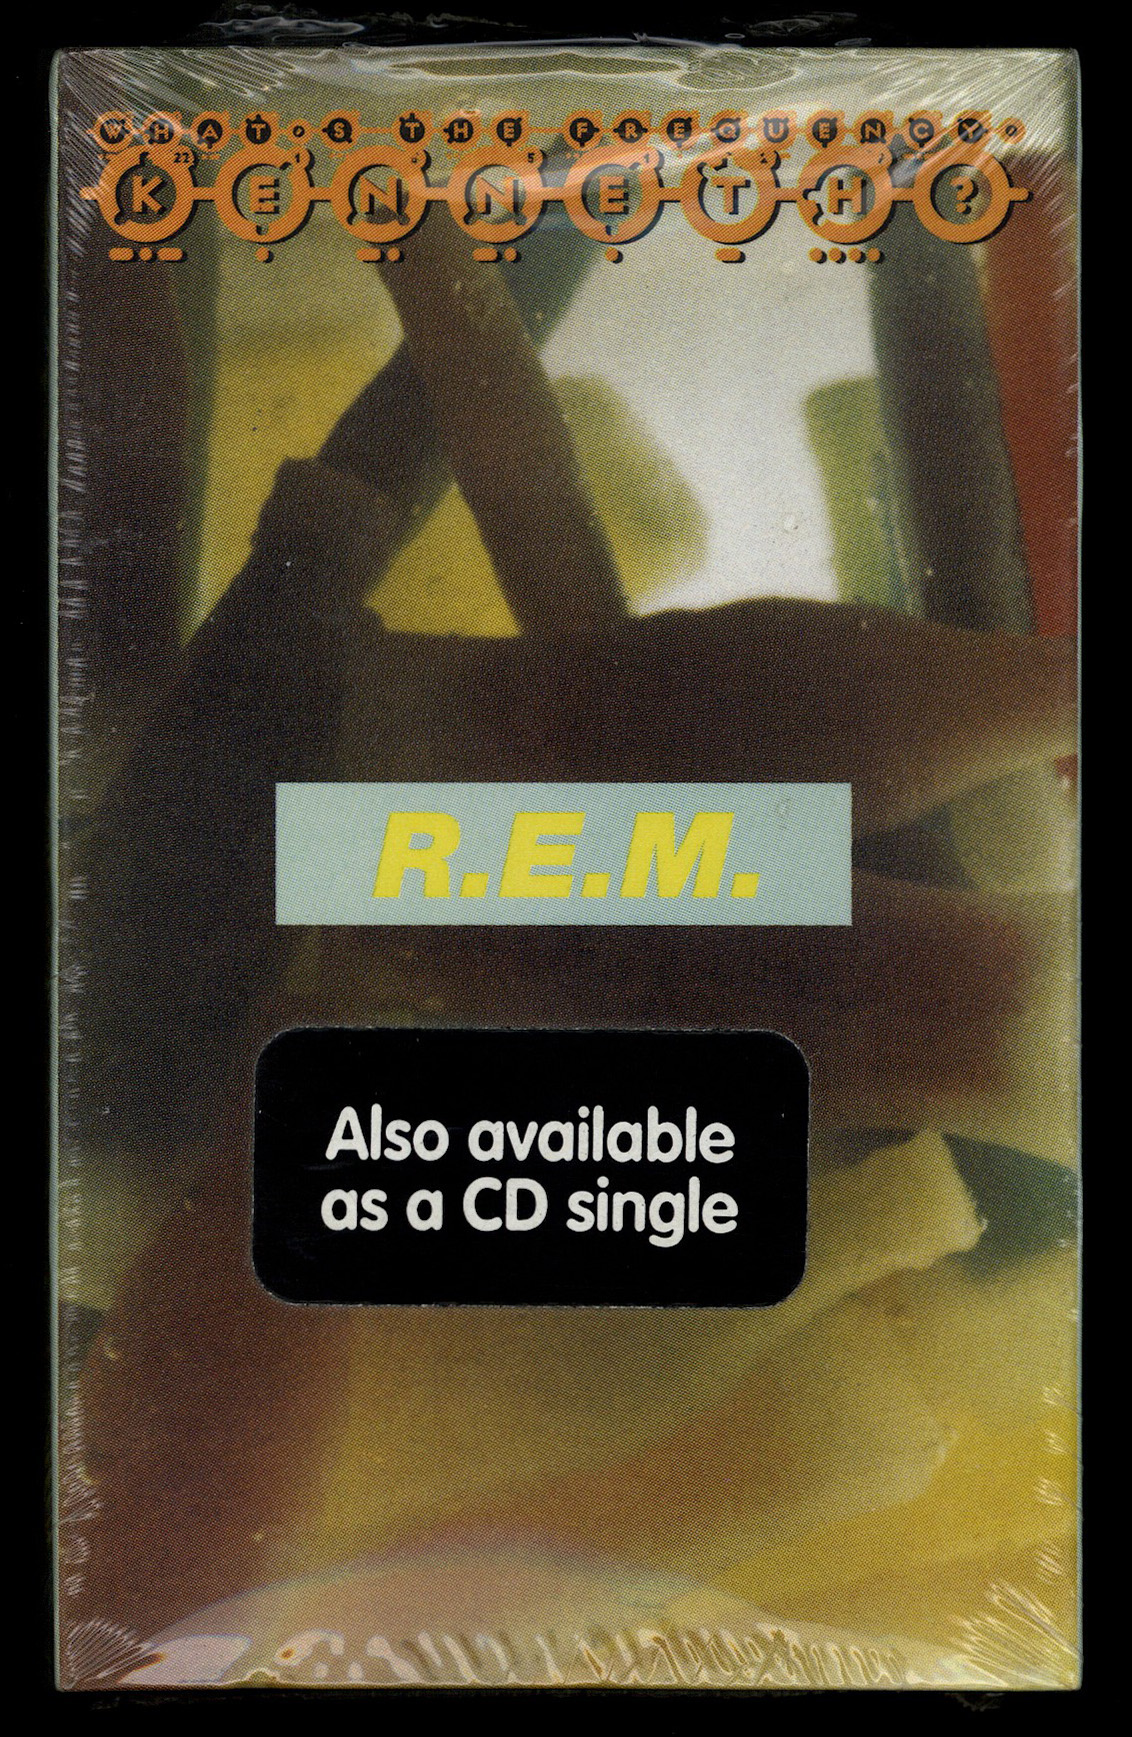 Cassingle cover